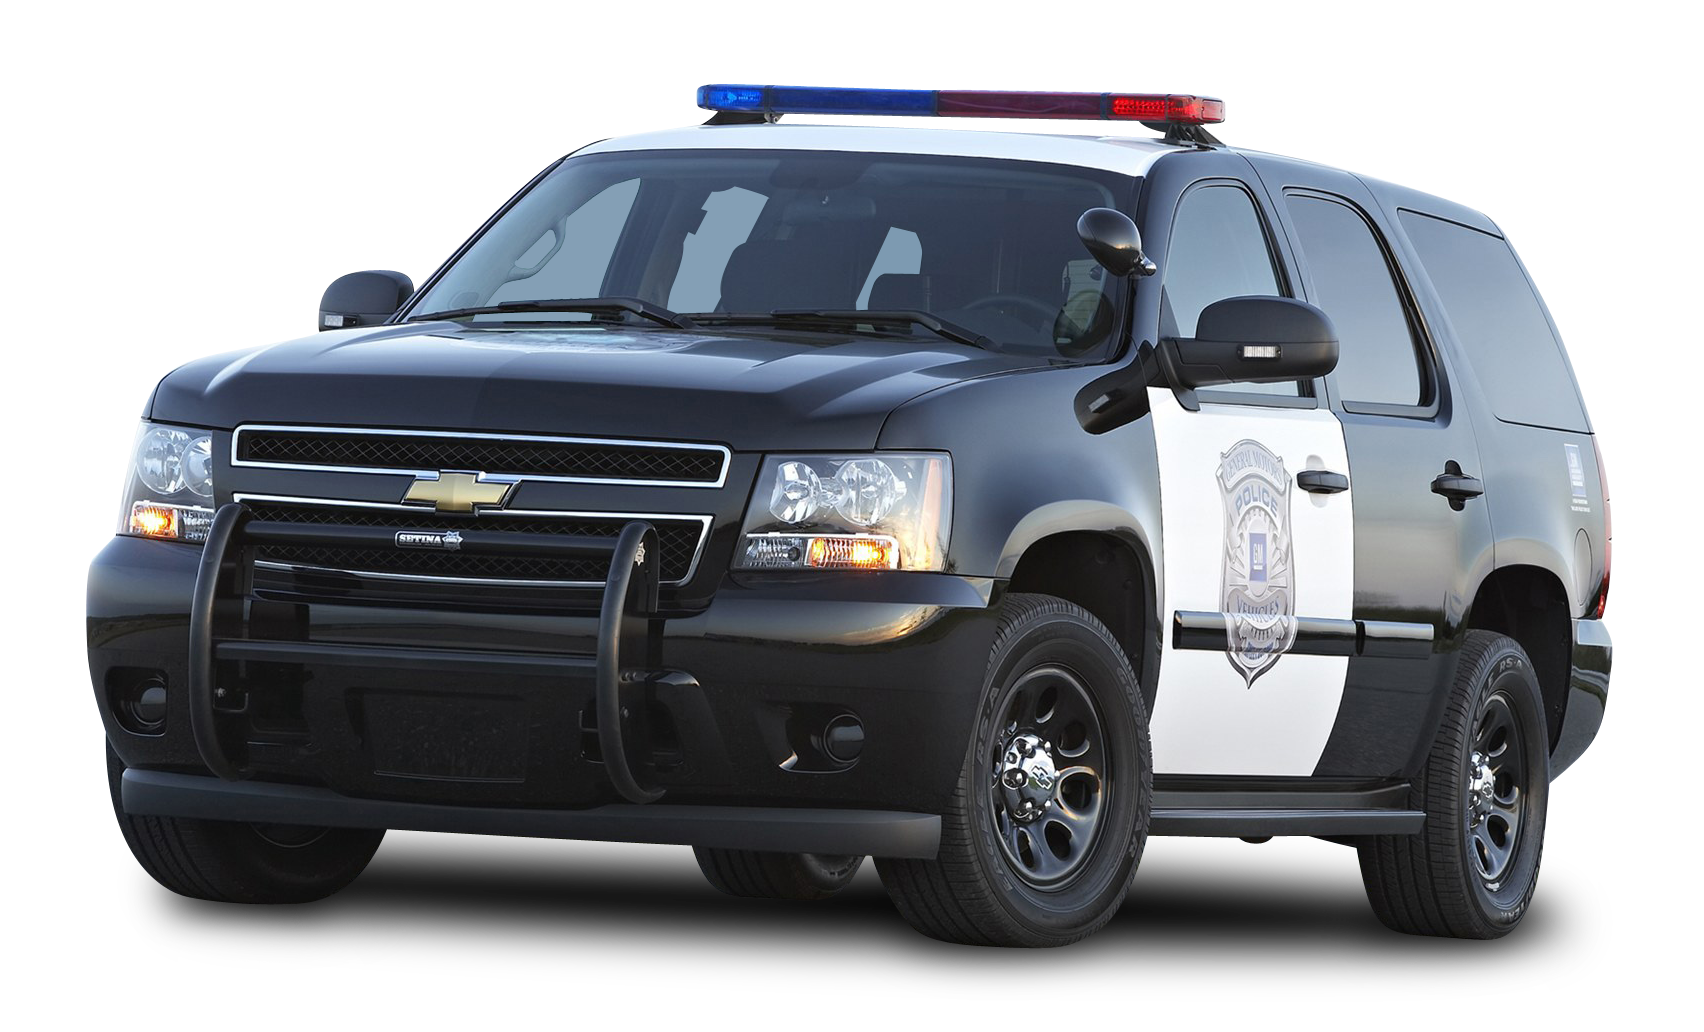 police car, black chevy tahoe police suv ppv car png image pngpix #23899